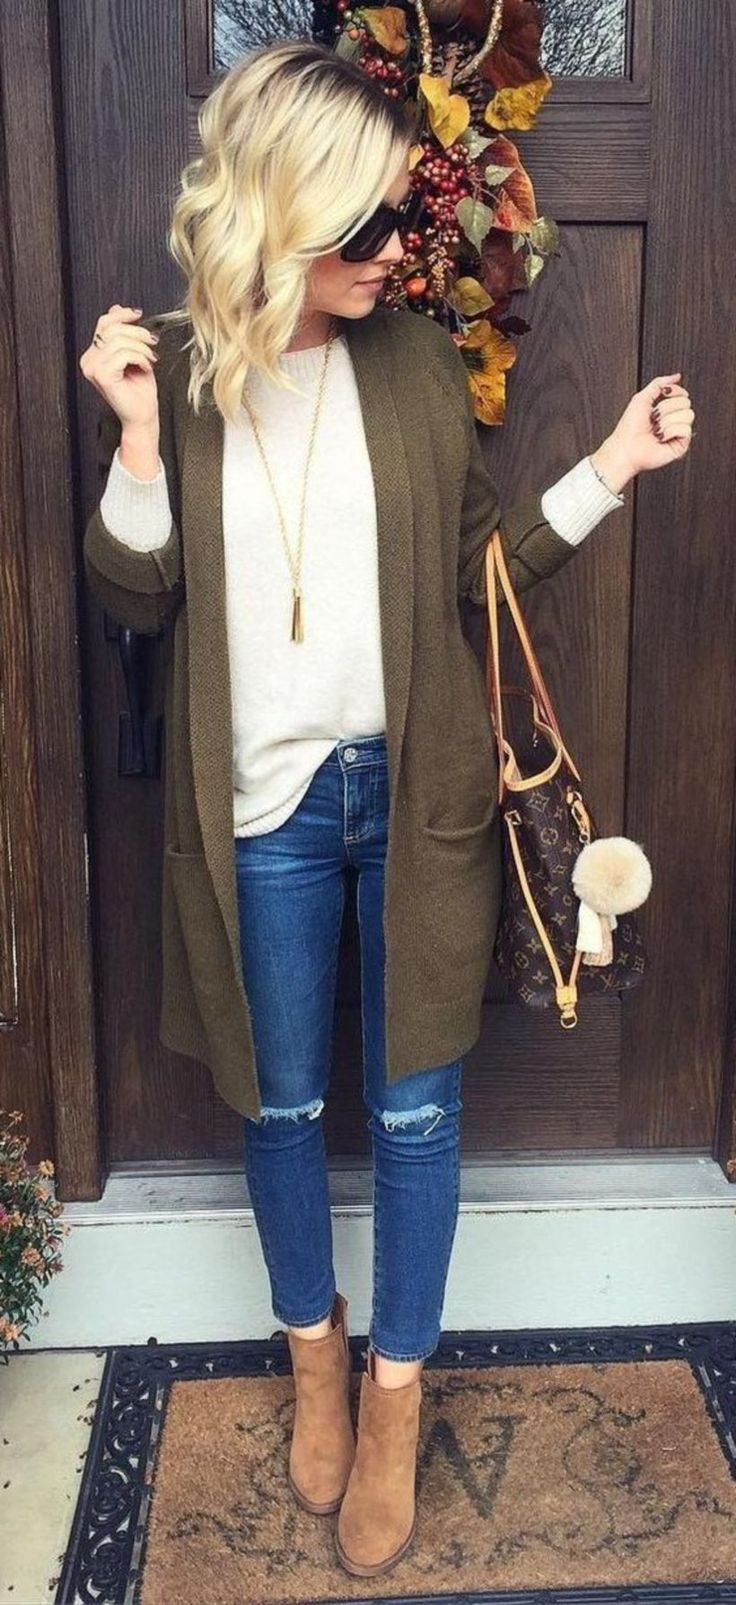 29 Best Fall Looks Images On Pinterest Winter Autumn And Clarette Sandals Clemence Gold Emas 40 60 Stylist Thanksgiving Outfit For Teens